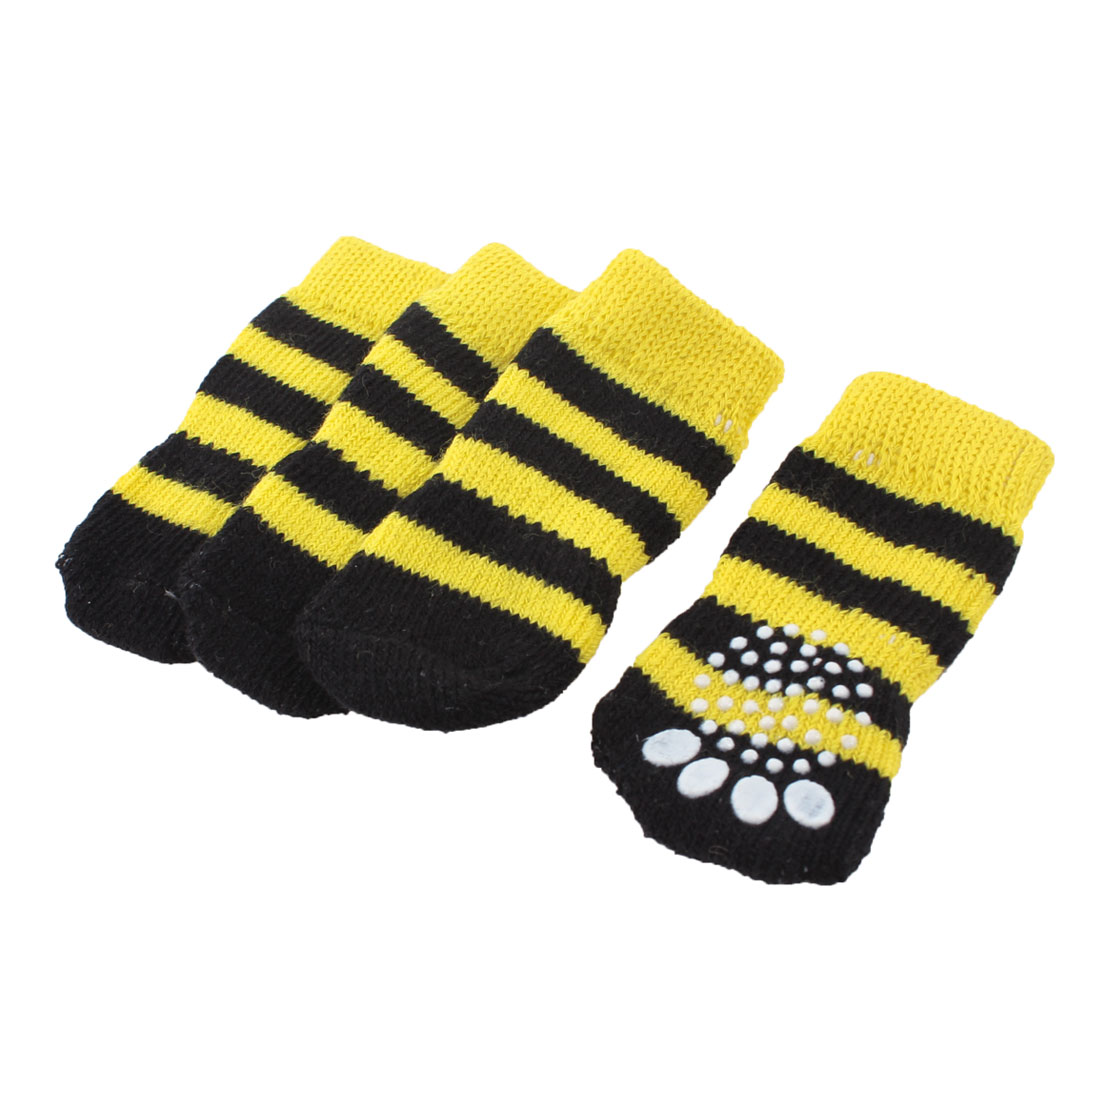 Yellow Black Knitted Stripe Paw Printed Nonslip Elastic Pet Dog Socks 2 Pairs